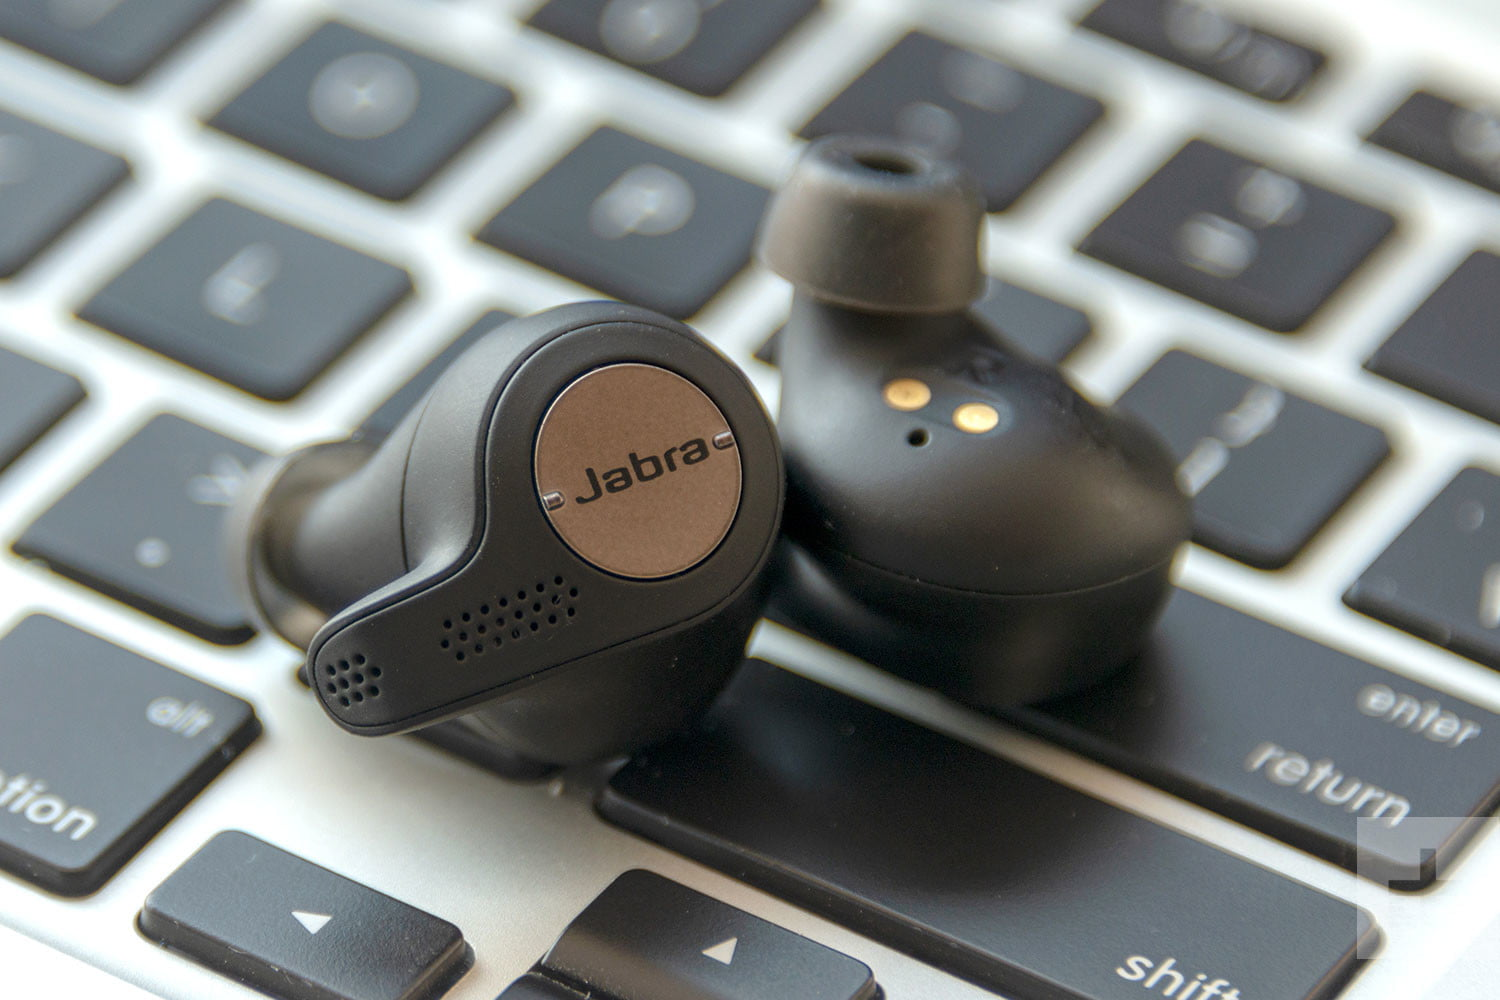 41d6070b2fa You Can Get These Waterproof Jabra Wireless Earbuds For $9 Cheaper Than  AirPods | Digital Trends